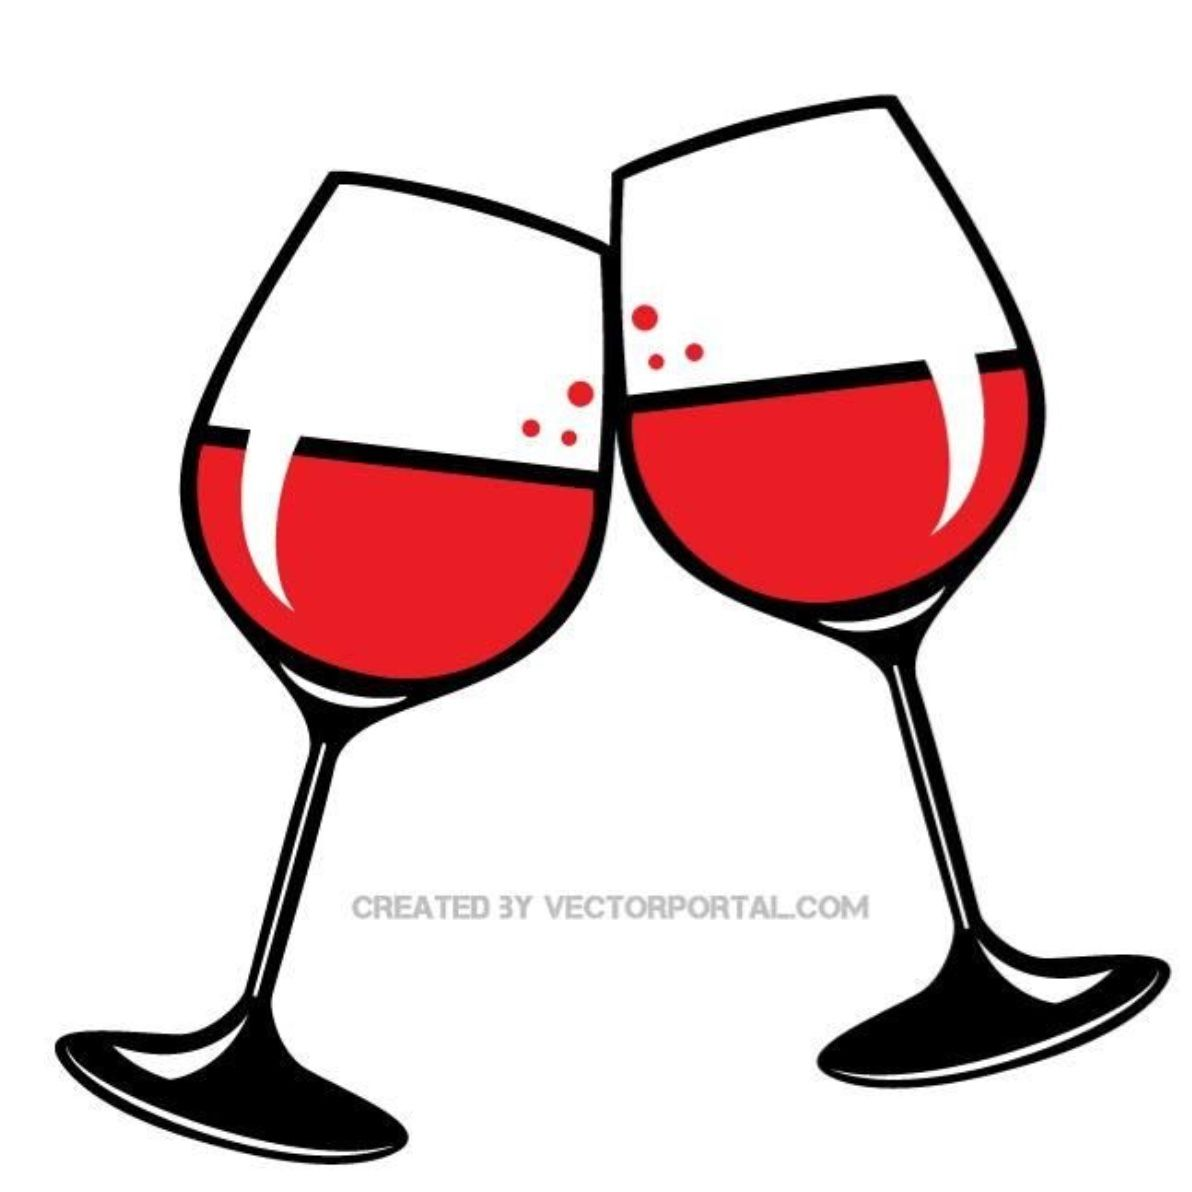 Pin By Bonnie Haley On Digital Images Wine Glass Drawing Wine Glass Designs Wine Glass Images